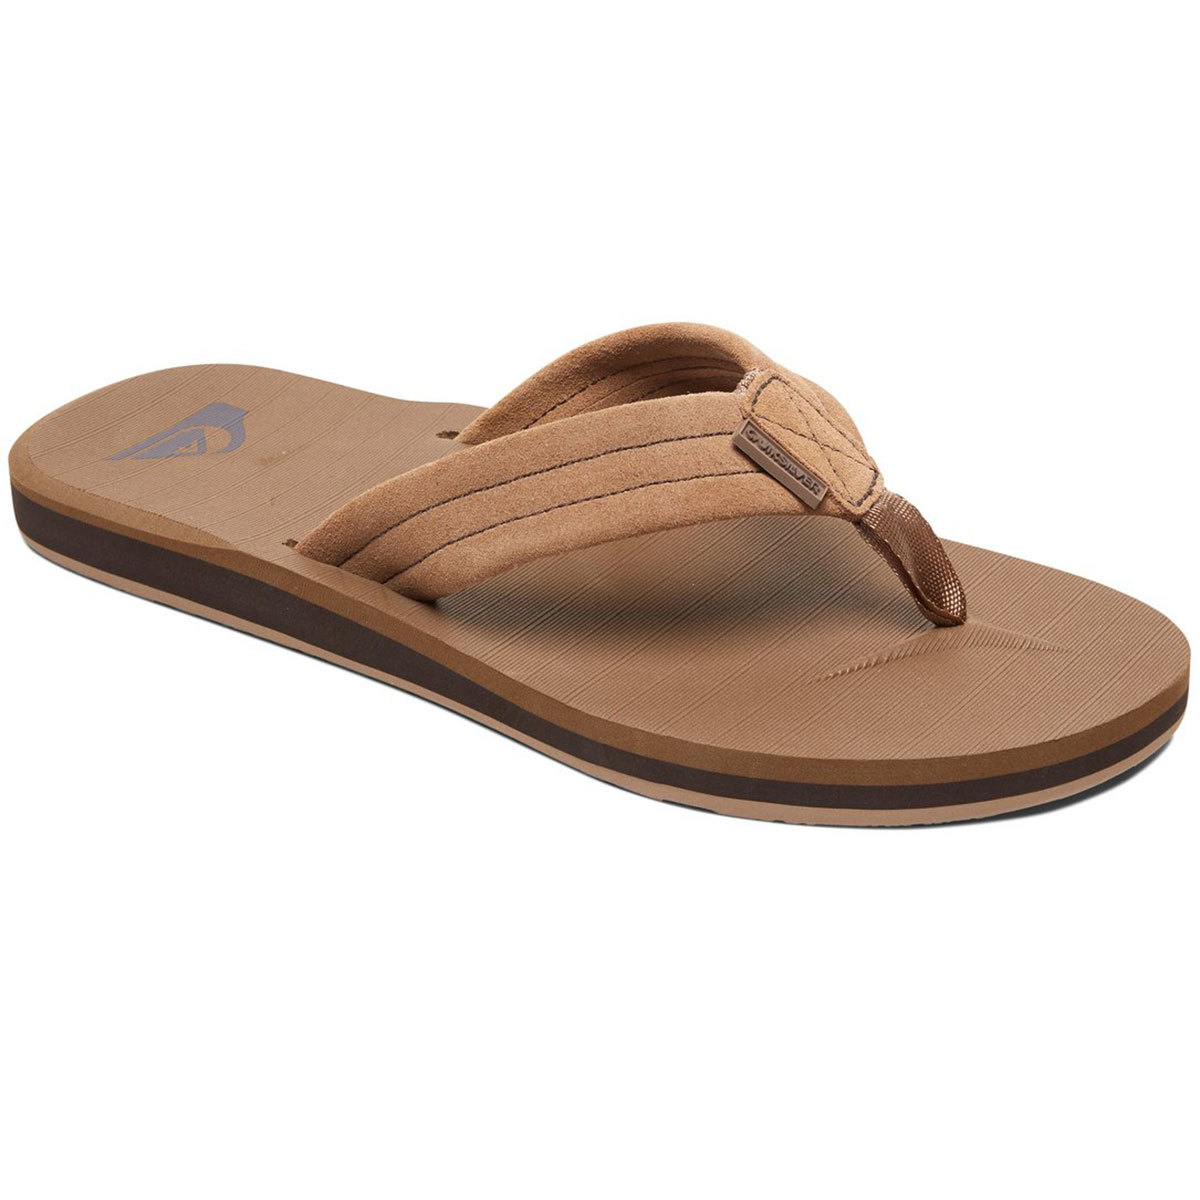 Quiksilver Boys' Carver Flip Flop Sandals - Brown, 6